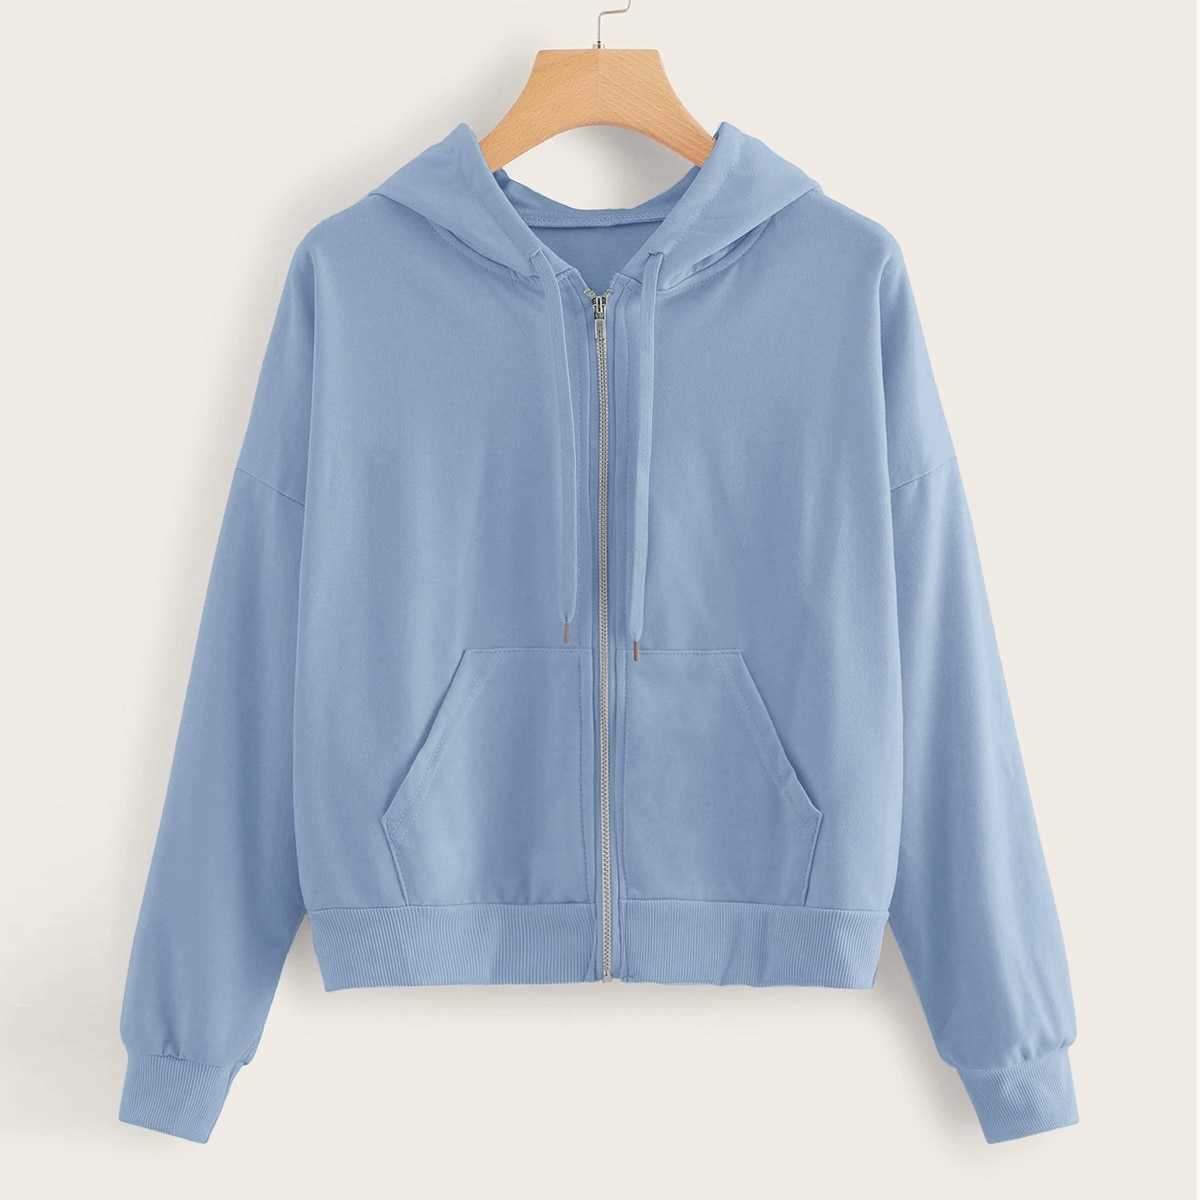 Zip Up Pocket Front Drawstring Hoodie in Blue by ROMWE on GOOFASH